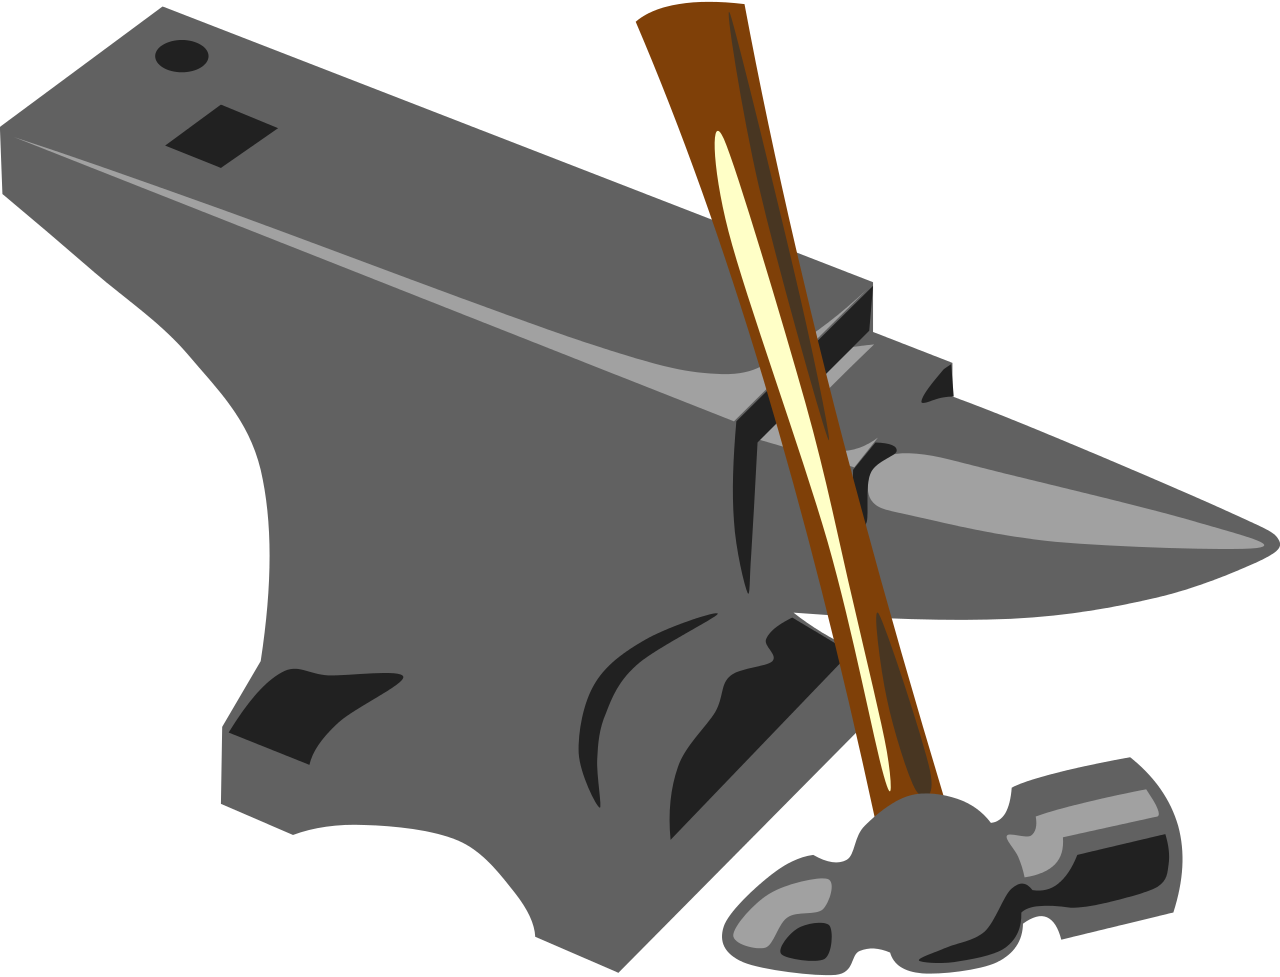 Anvil clipart transparent. File blacksmith hammer svg